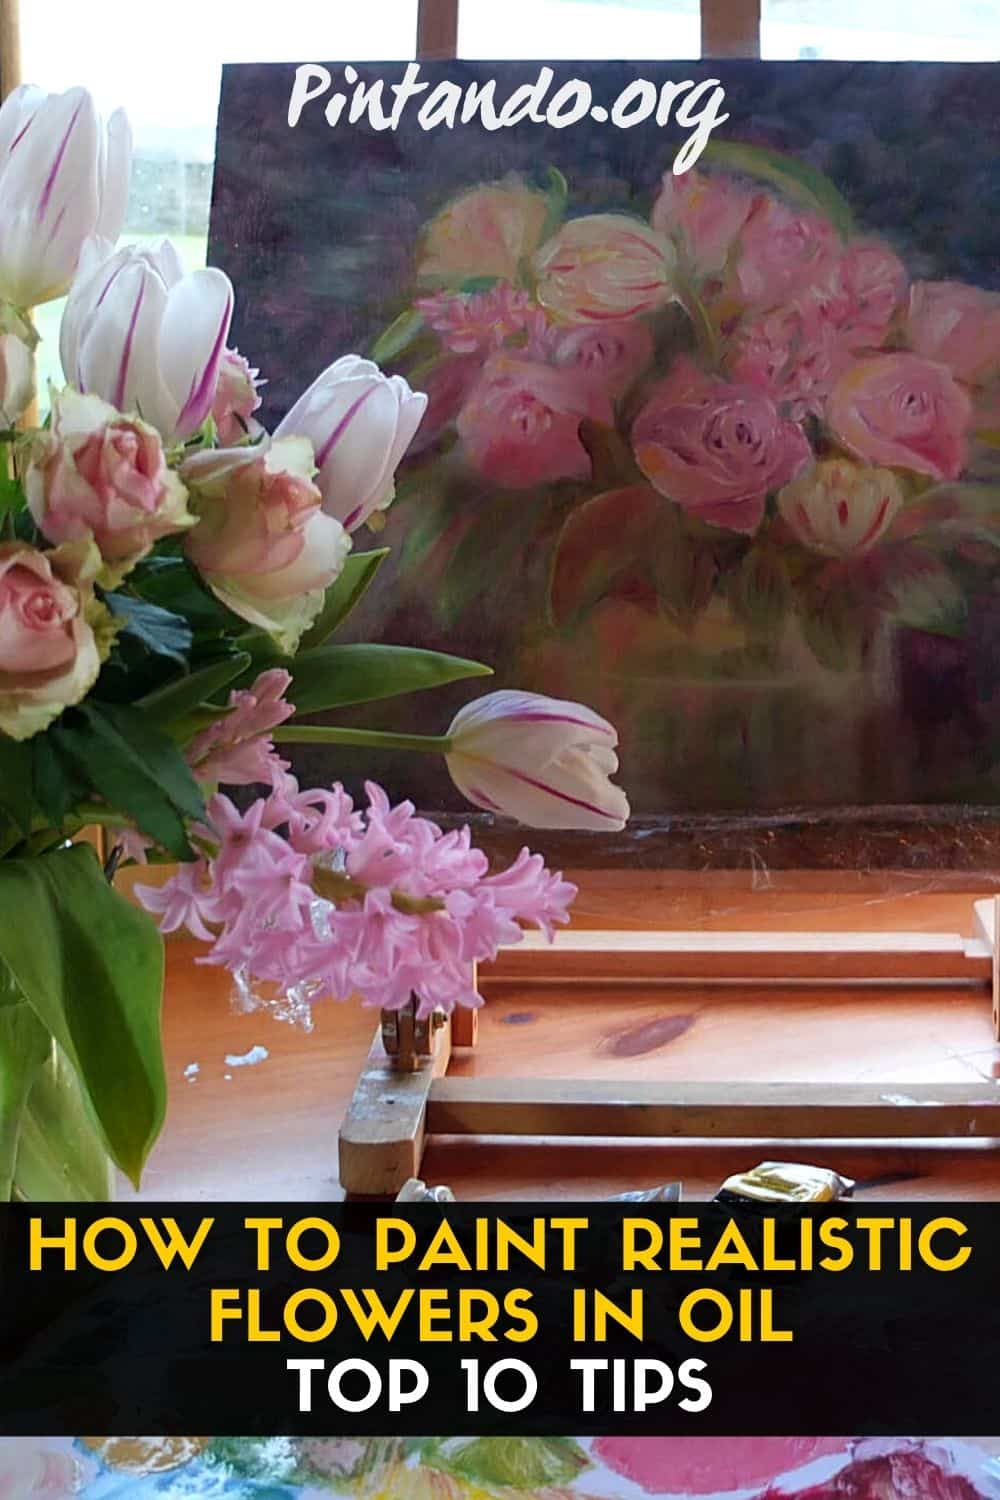 HOW-TO-PAINT-REALISTIC-FLOWERS-IN-OIL-TOP-10-TIPS-min.jpg